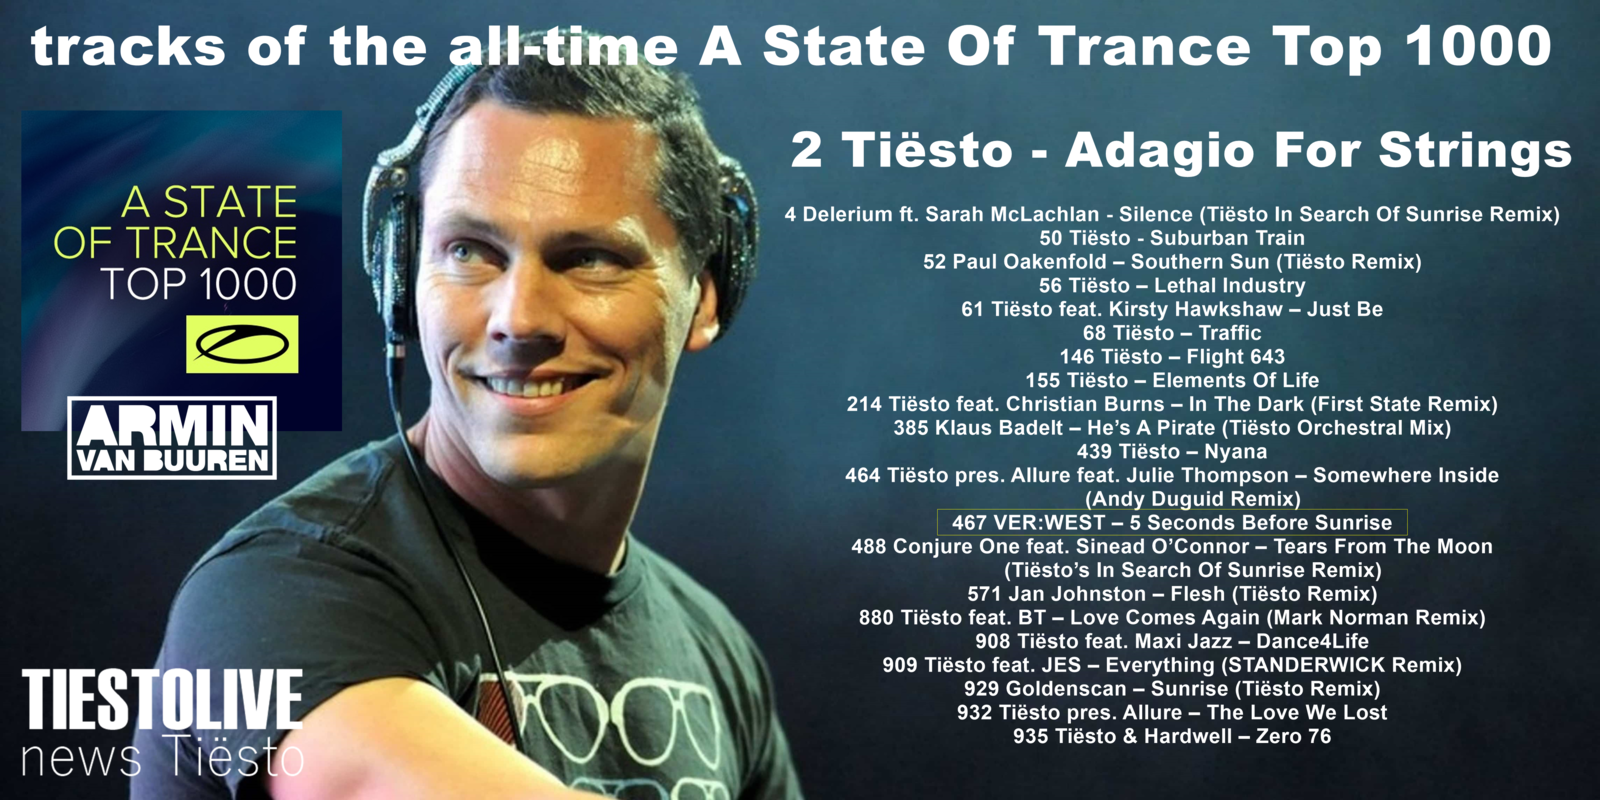 Tiësto, number 2 in the top 1000 tracks of the all-time A State Of Trance, armin van buuren, asot, 2021